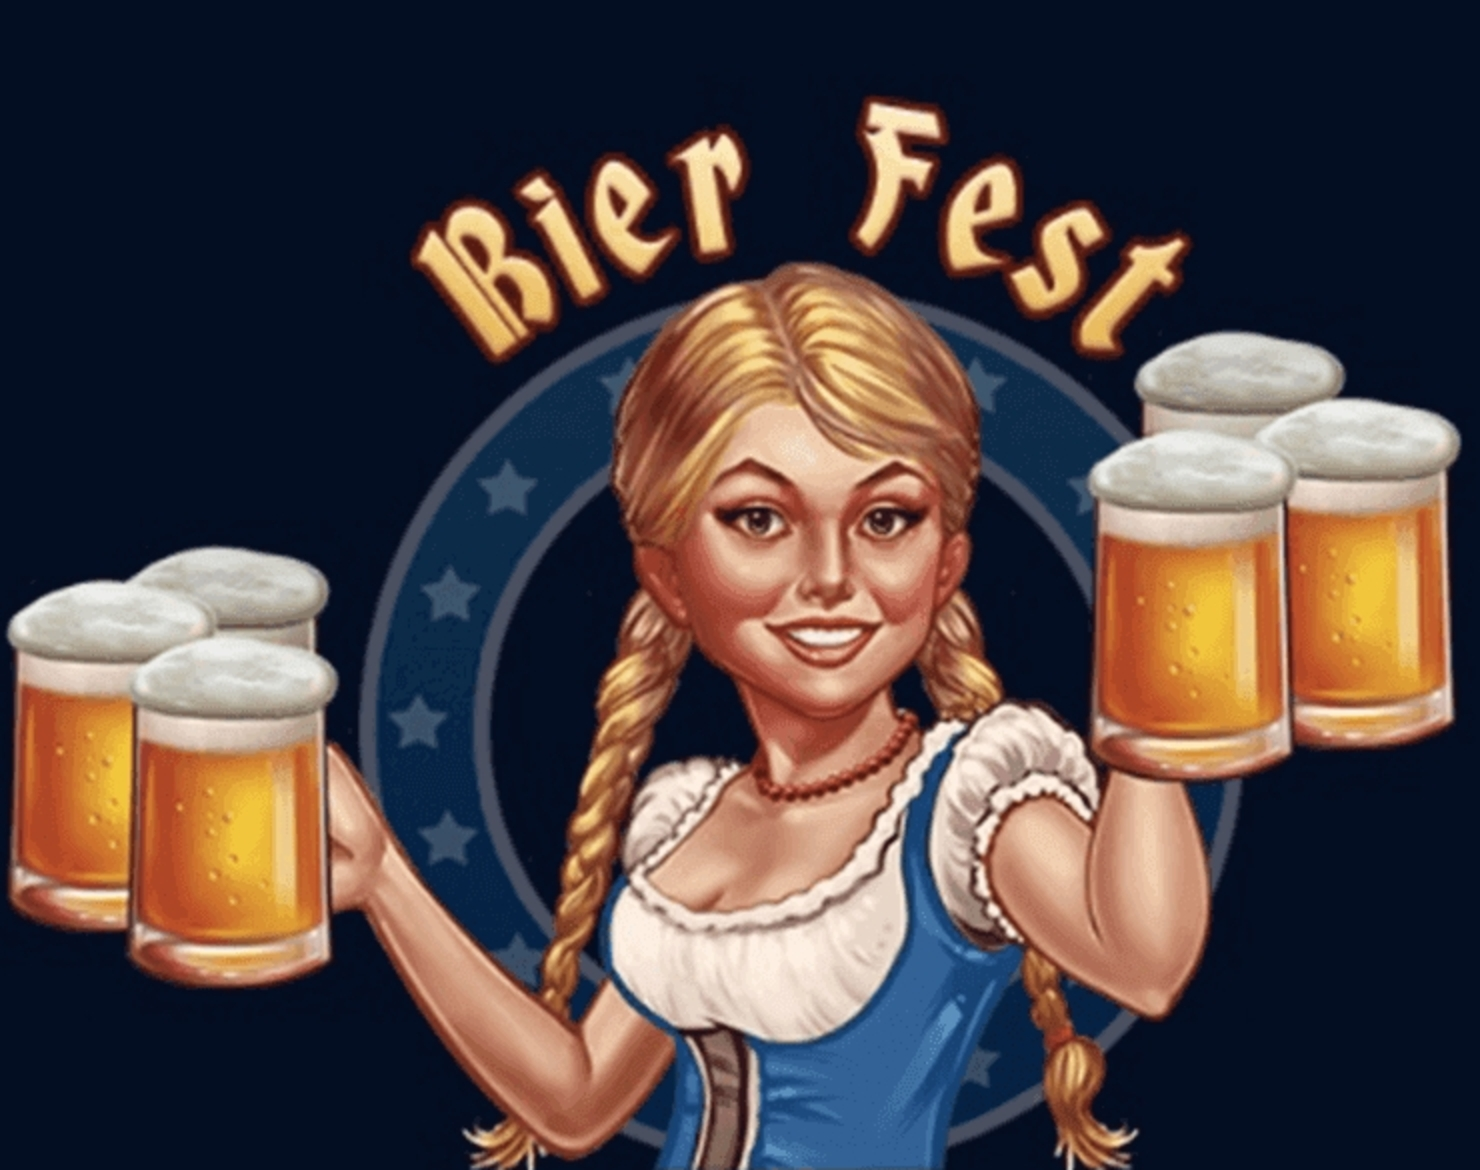 The Bier Fest Online Slot Demo Game by Genesis